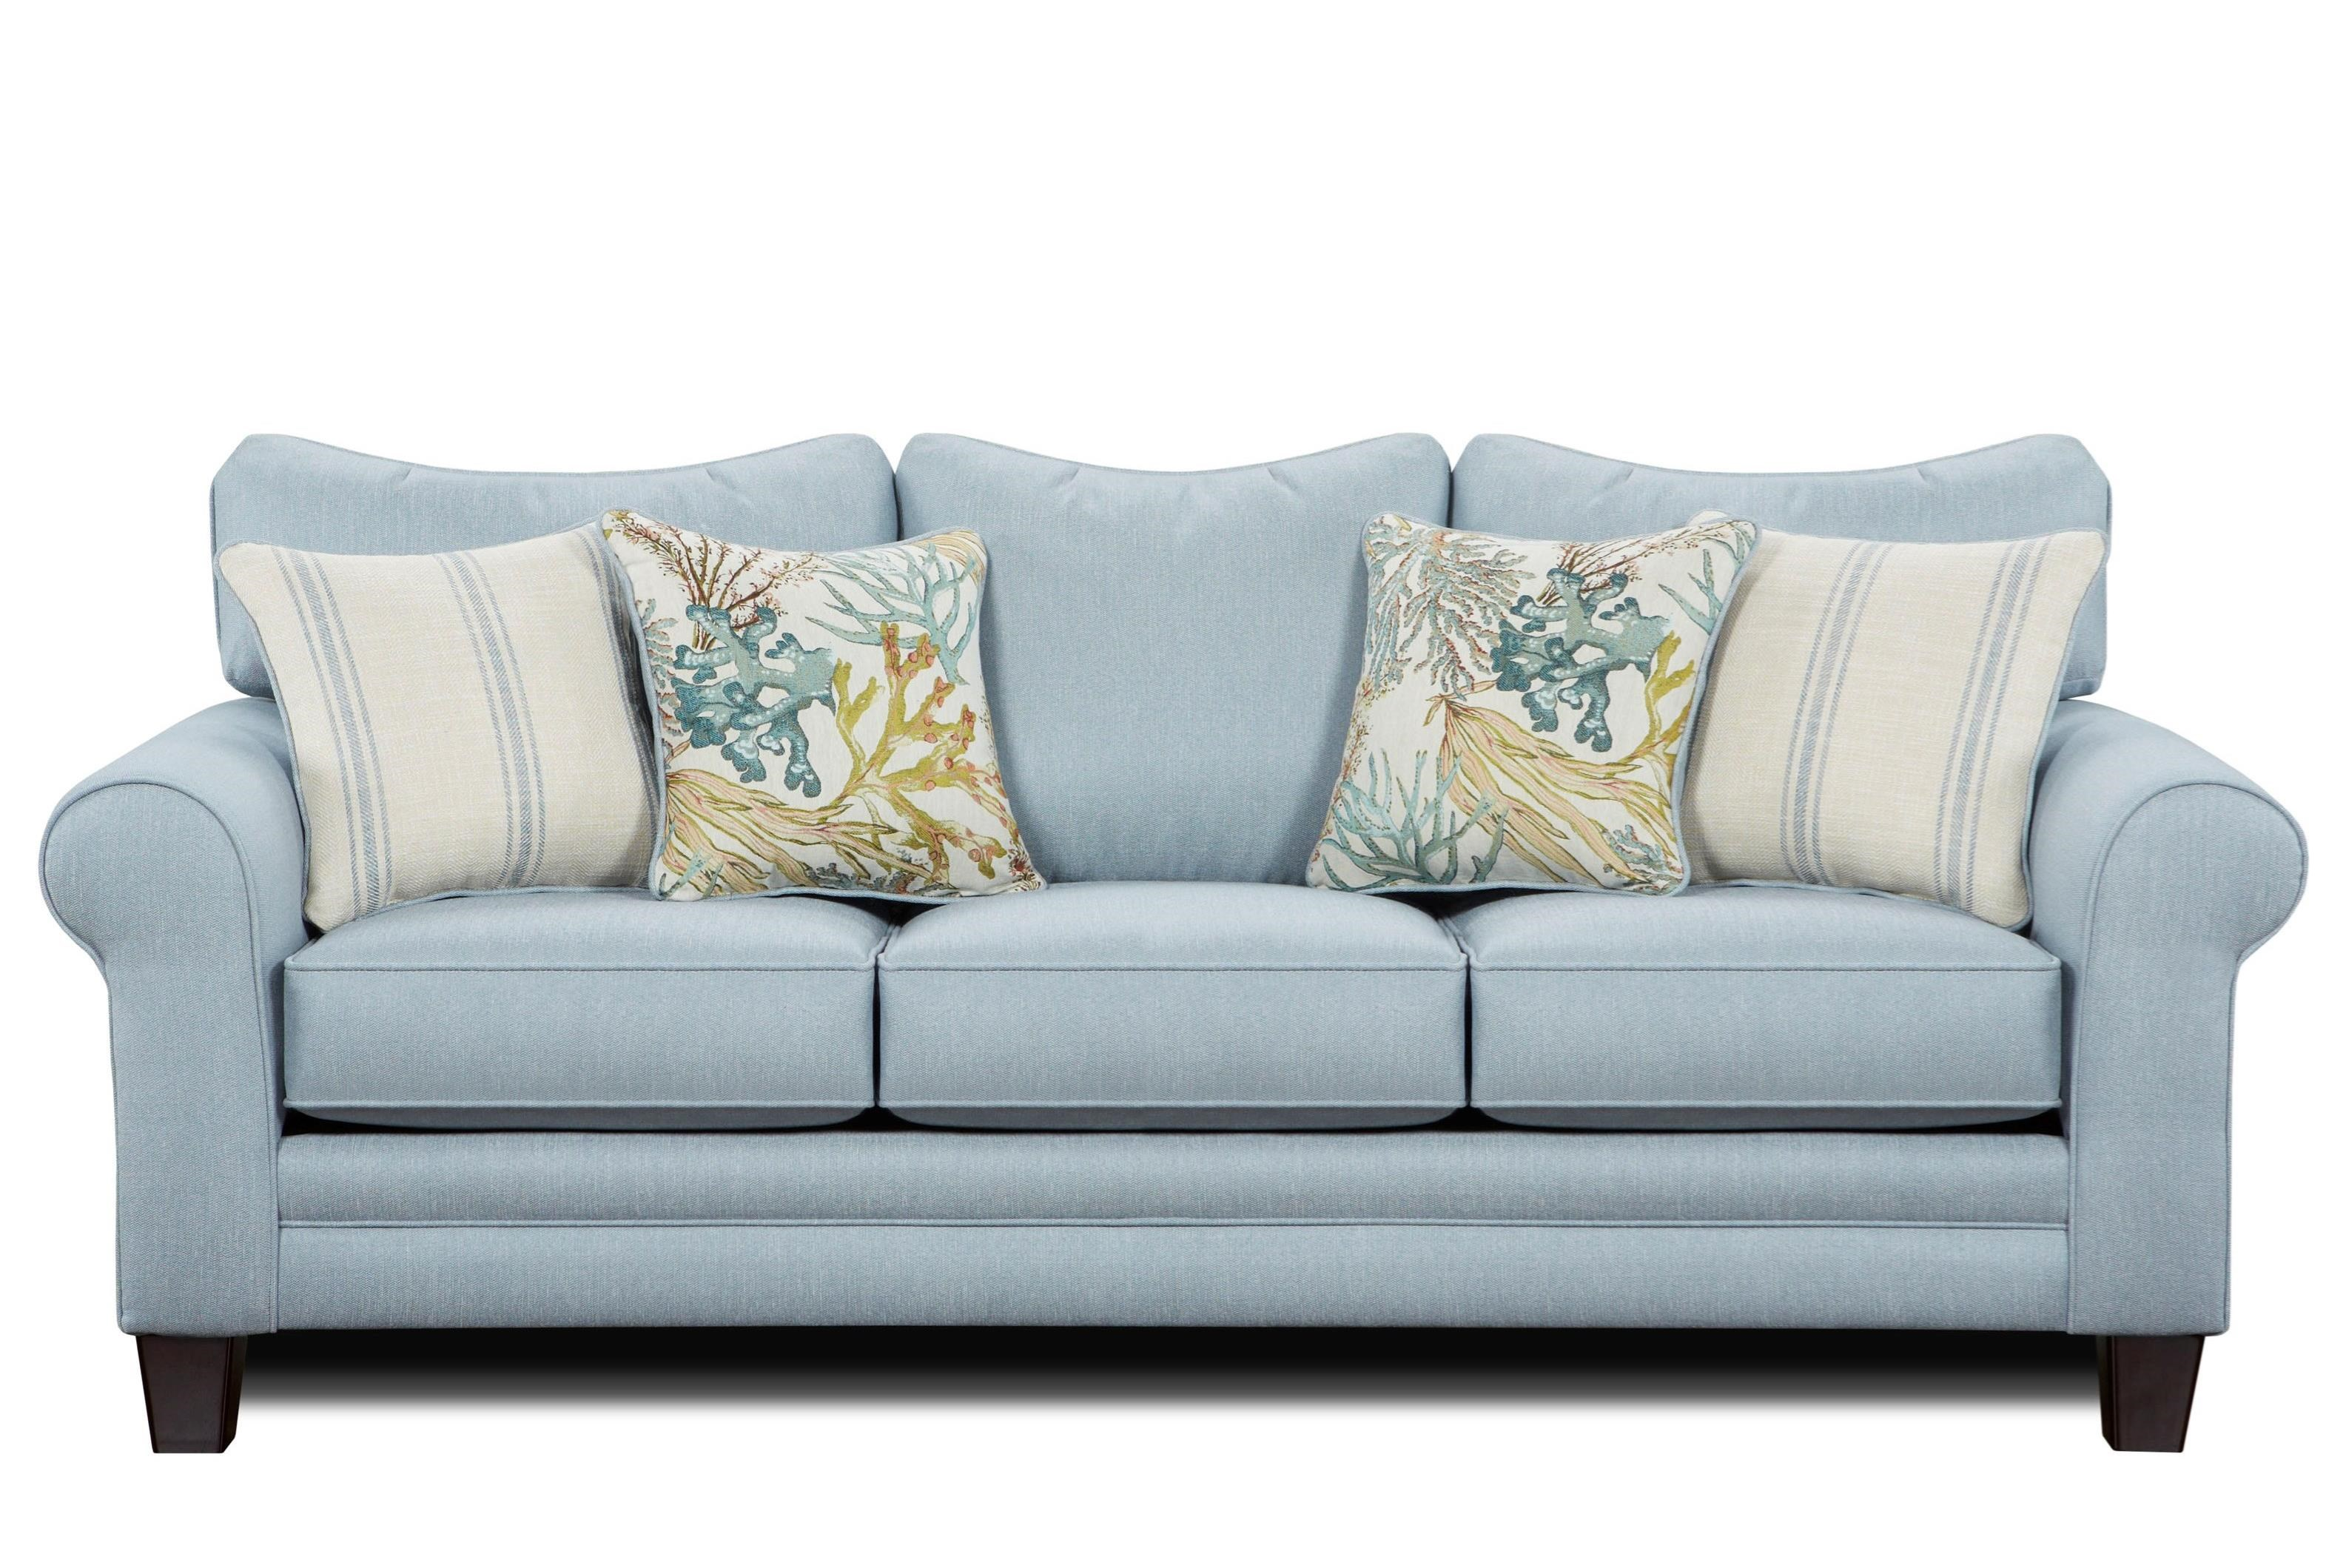 Sofa Bed Couch 1140 Sleeper Sofa W Accent Pillows By Fusion Furniture At Lindy S Furniture Company